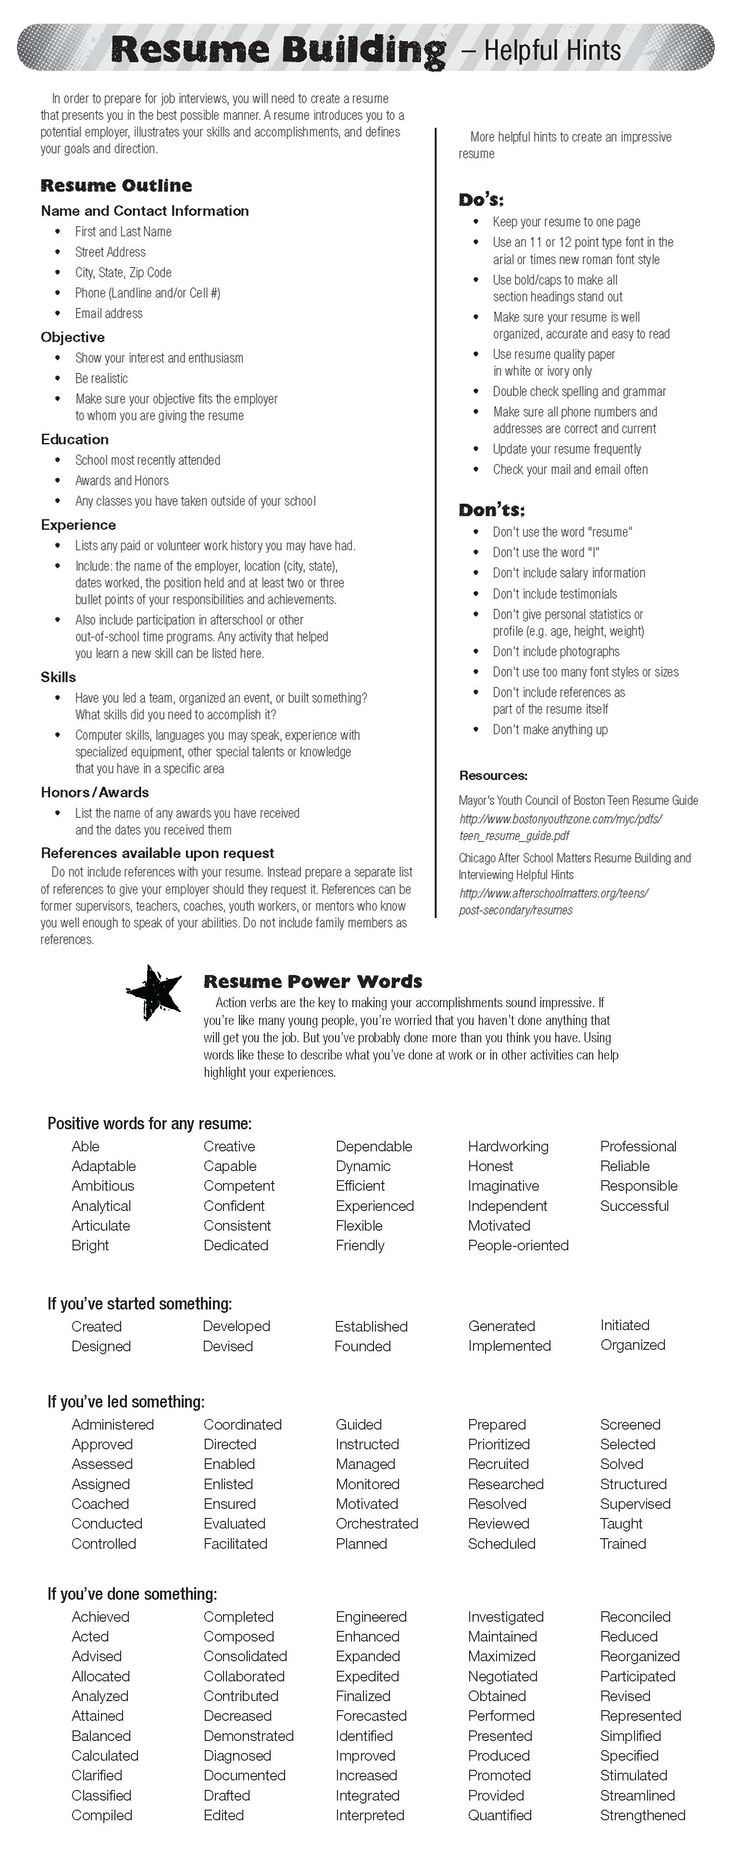 Picnictoimpeachus  Unusual  Ideas About Resume On Pinterest  Cv Format Resume Cv And  With Fascinating  Ideas About Resume On Pinterest  Cv Format Resume Cv And Resume Templates With Awesome Resume Site Also Truck Driving Resume In Addition Double Major On Resume And Sample Resume For College Students As Well As How To Build The Perfect Resume Additionally Resume For From Pinterestcom With Picnictoimpeachus  Fascinating  Ideas About Resume On Pinterest  Cv Format Resume Cv And  With Awesome  Ideas About Resume On Pinterest  Cv Format Resume Cv And Resume Templates And Unusual Resume Site Also Truck Driving Resume In Addition Double Major On Resume From Pinterestcom